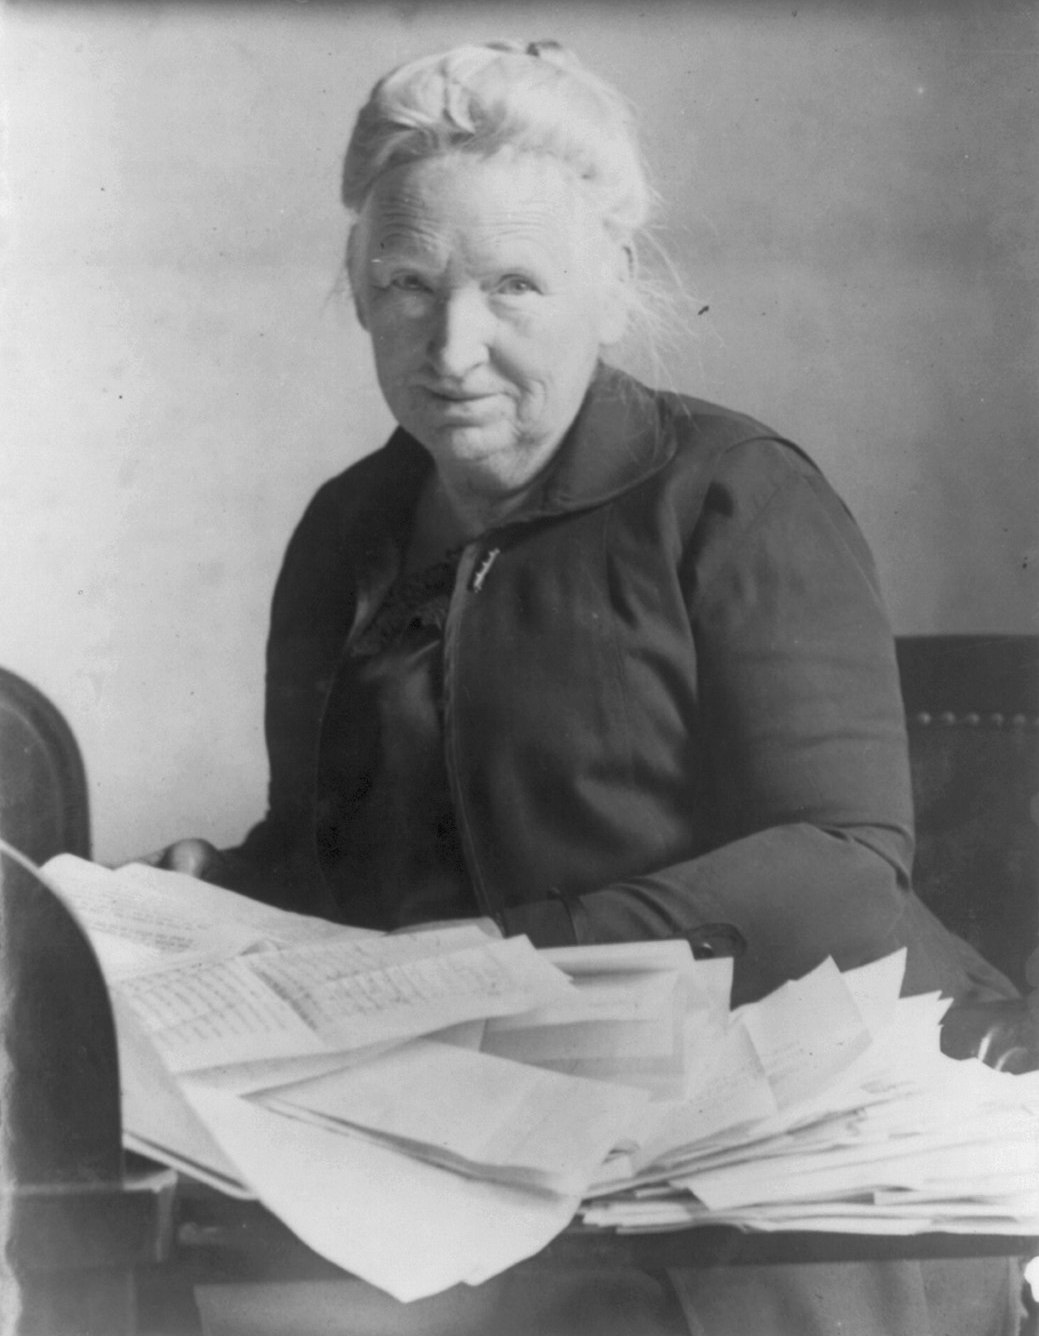 Photograph of Alice Robertson in old age, seated with papers on a table in front of her.